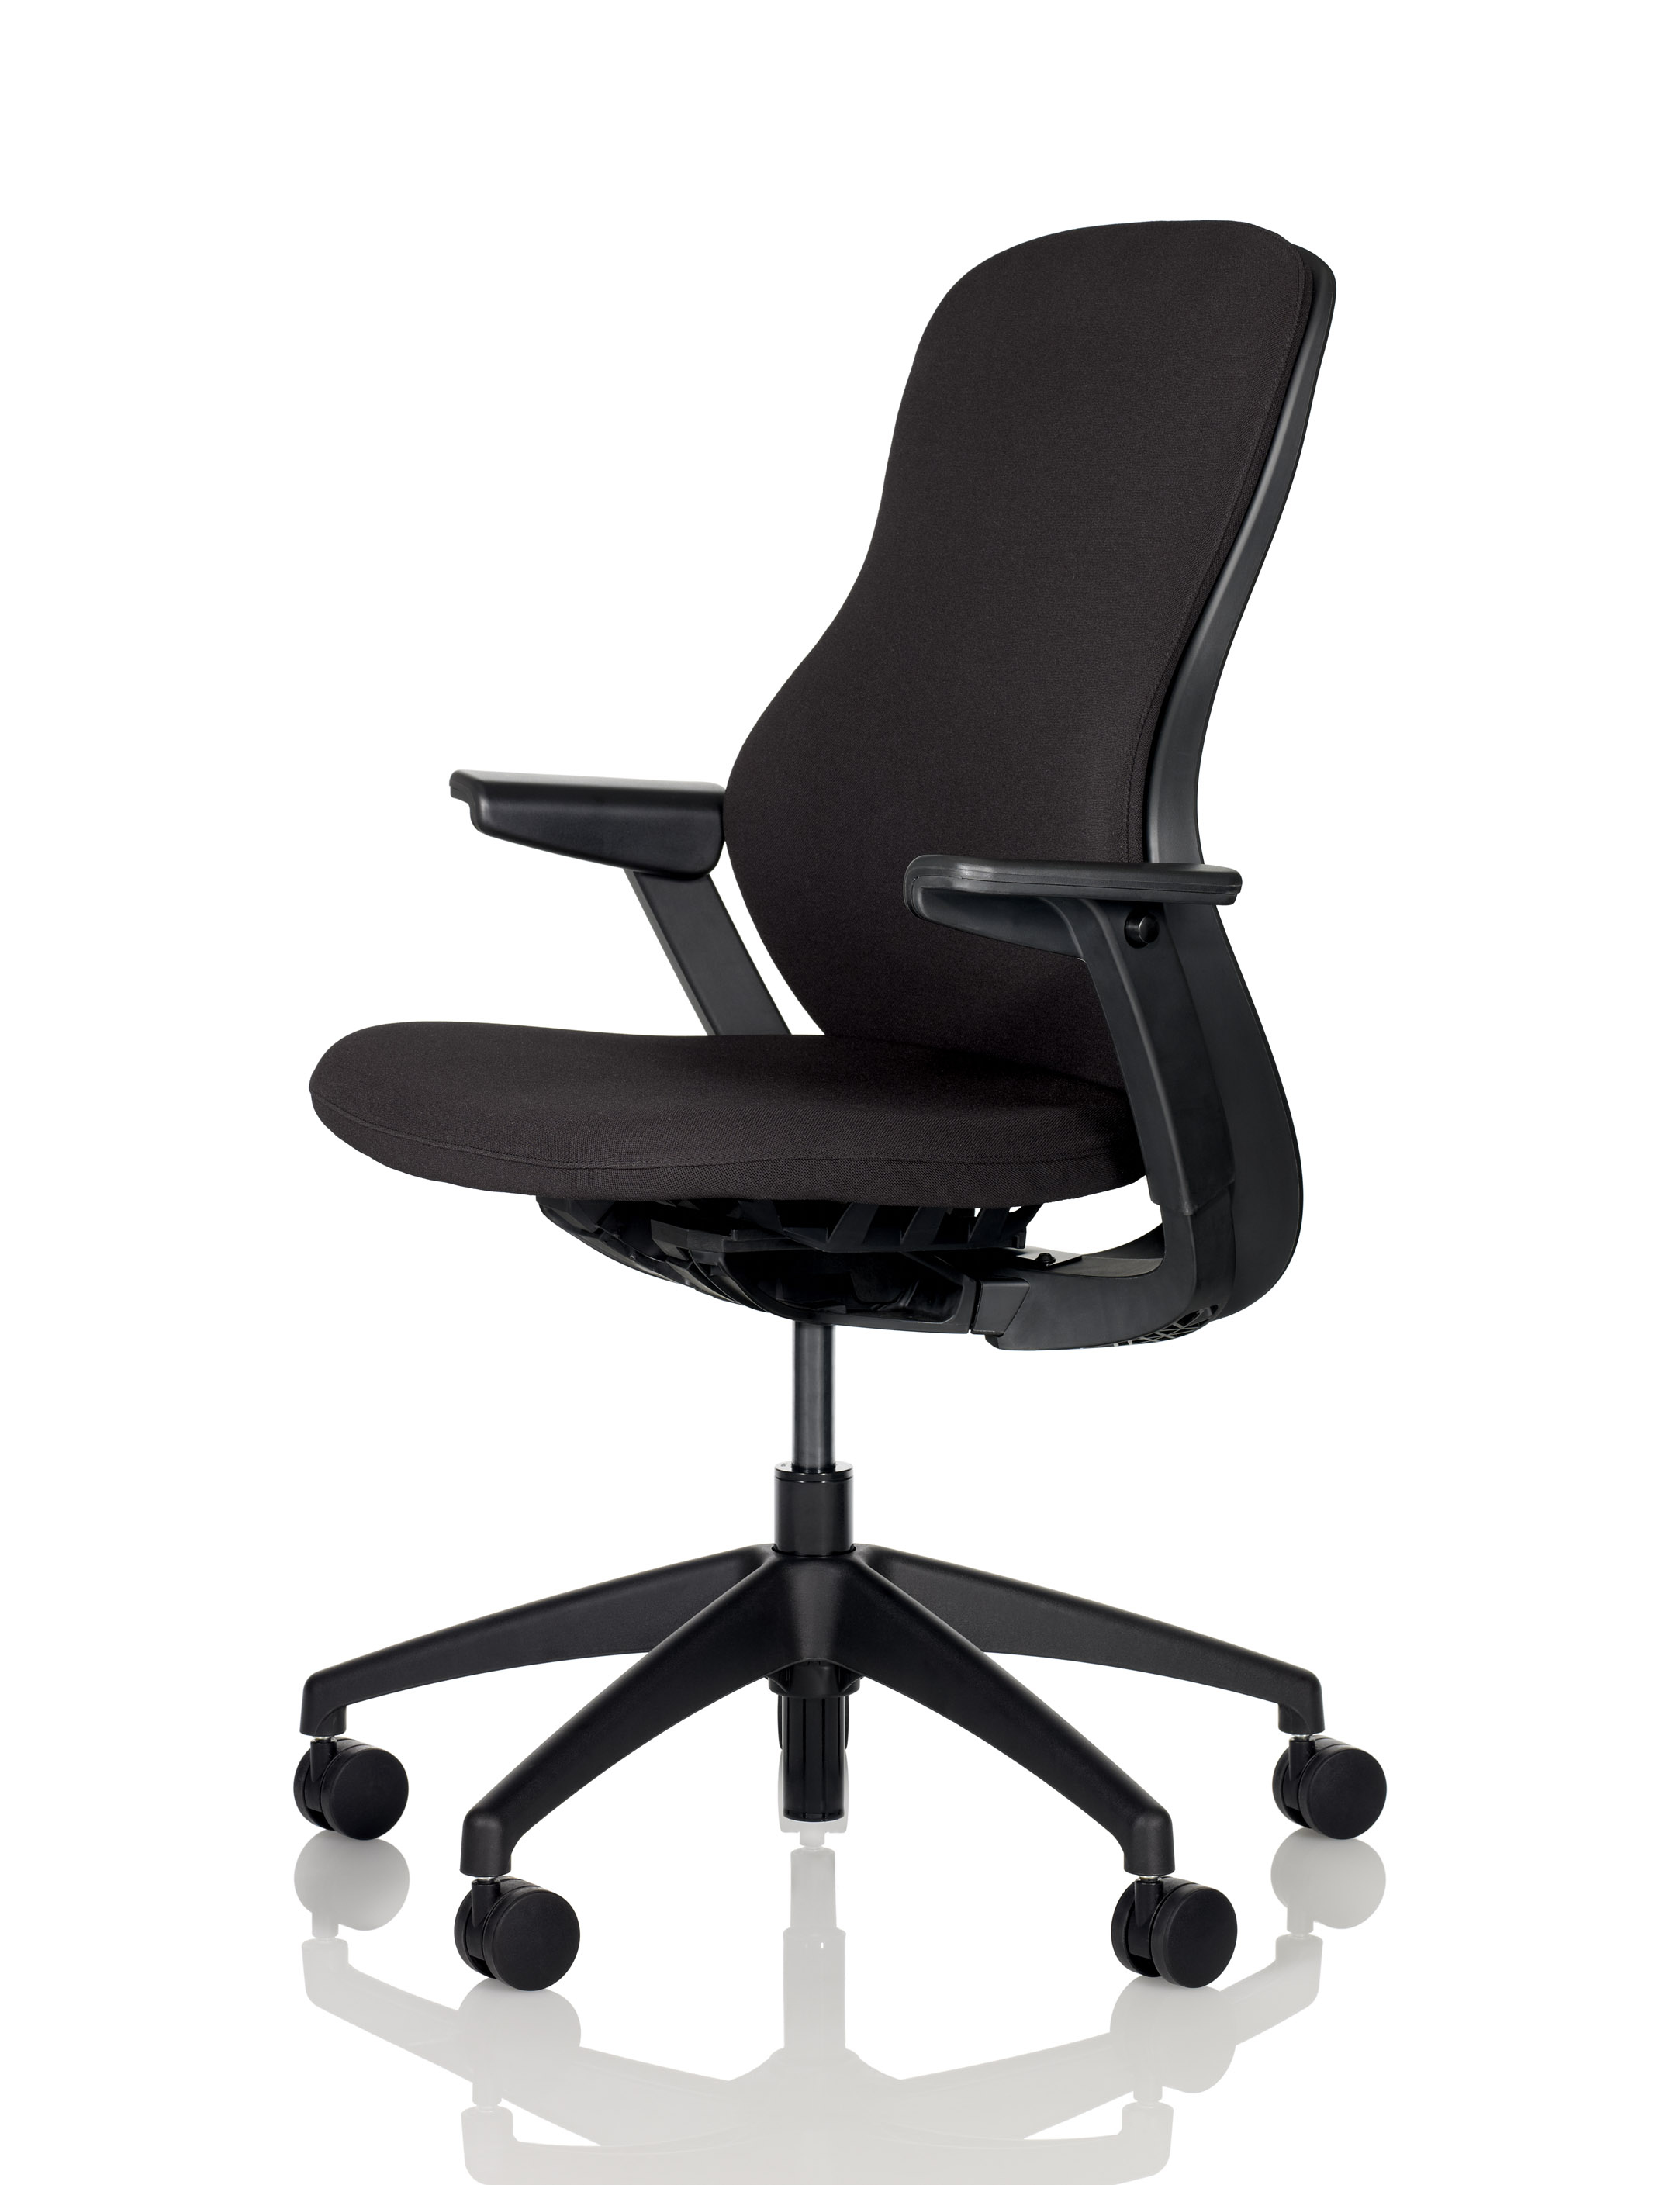 Knoll Regeneration Chair Regeneration By Knoll Fully Upholstered Ergonomic Chair